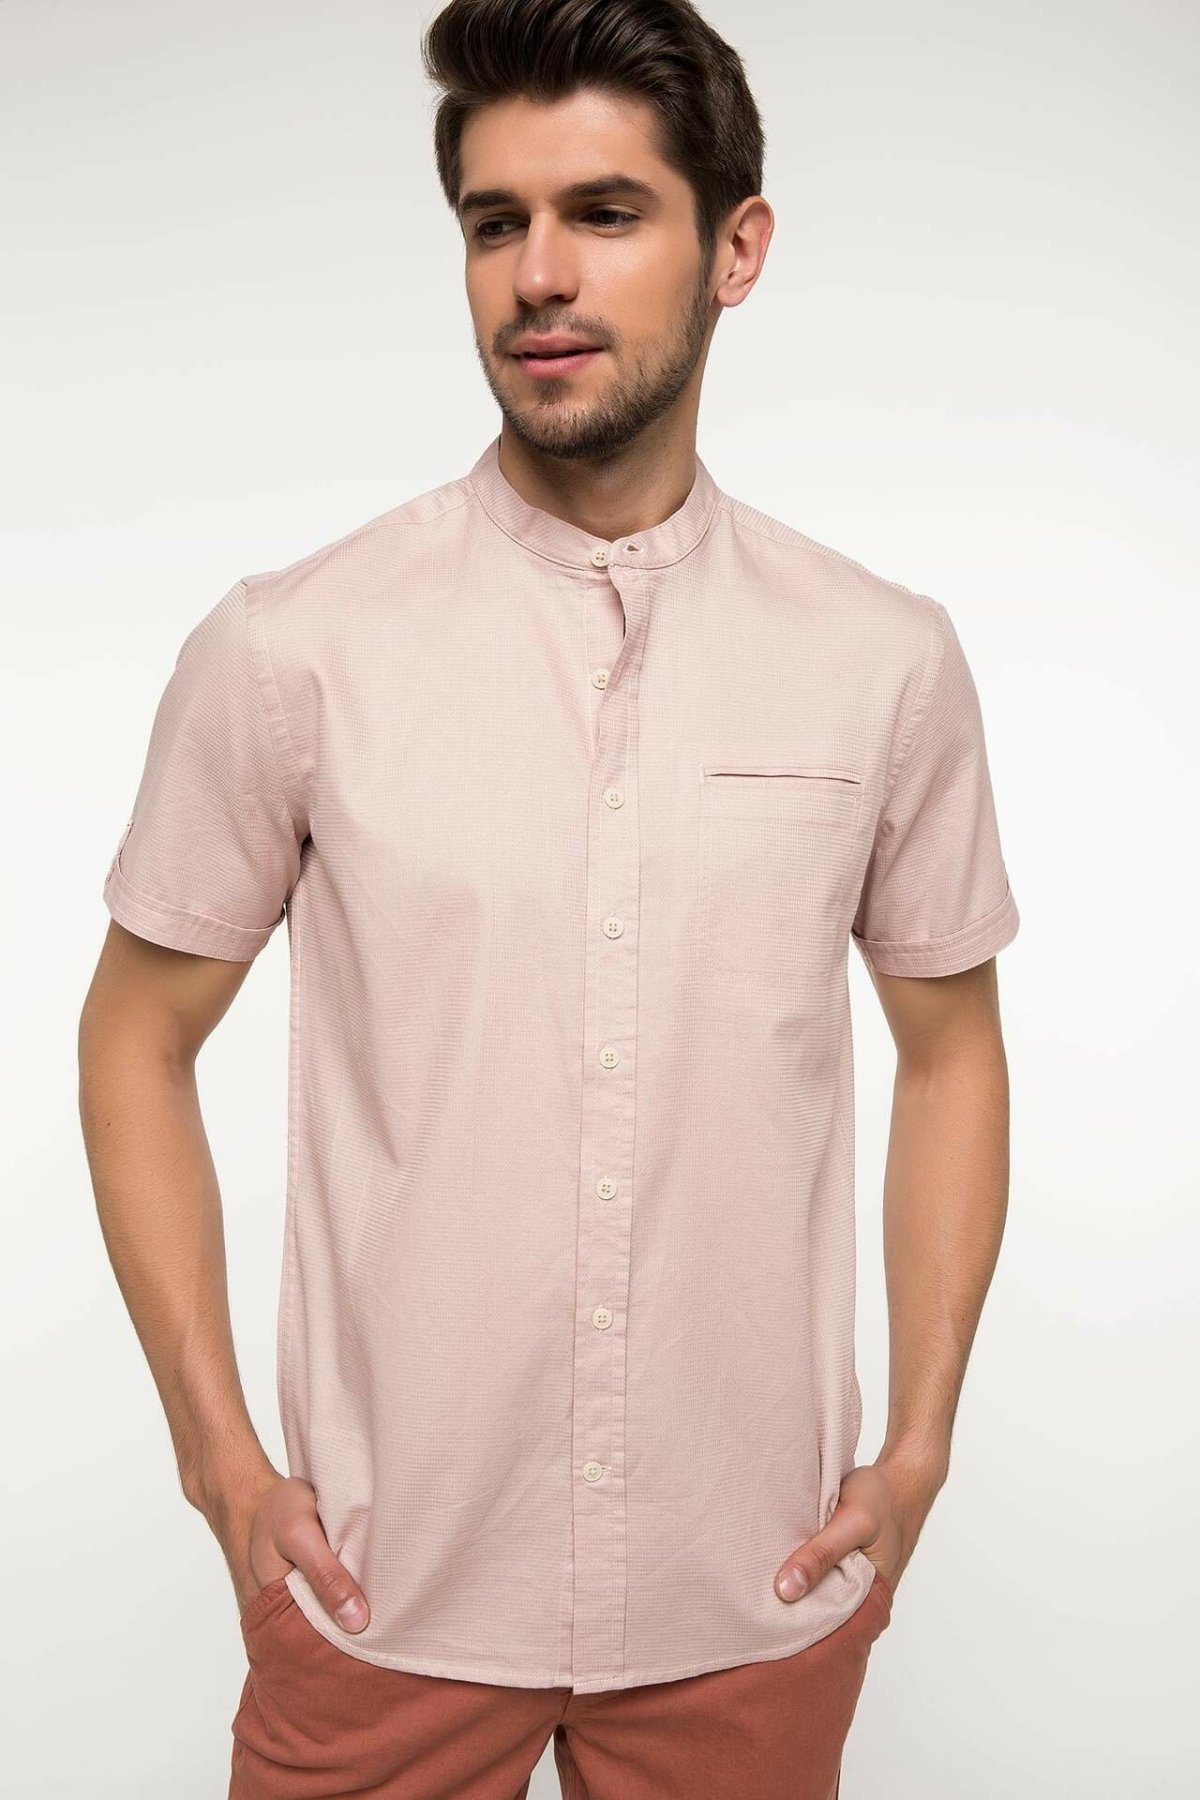 DeFacto Man Fashion Short Sleeve Shirt Male Casual Loose Comfort Tops Men's Pure Color High Quality Shirts Summer - I3800AZ18SM